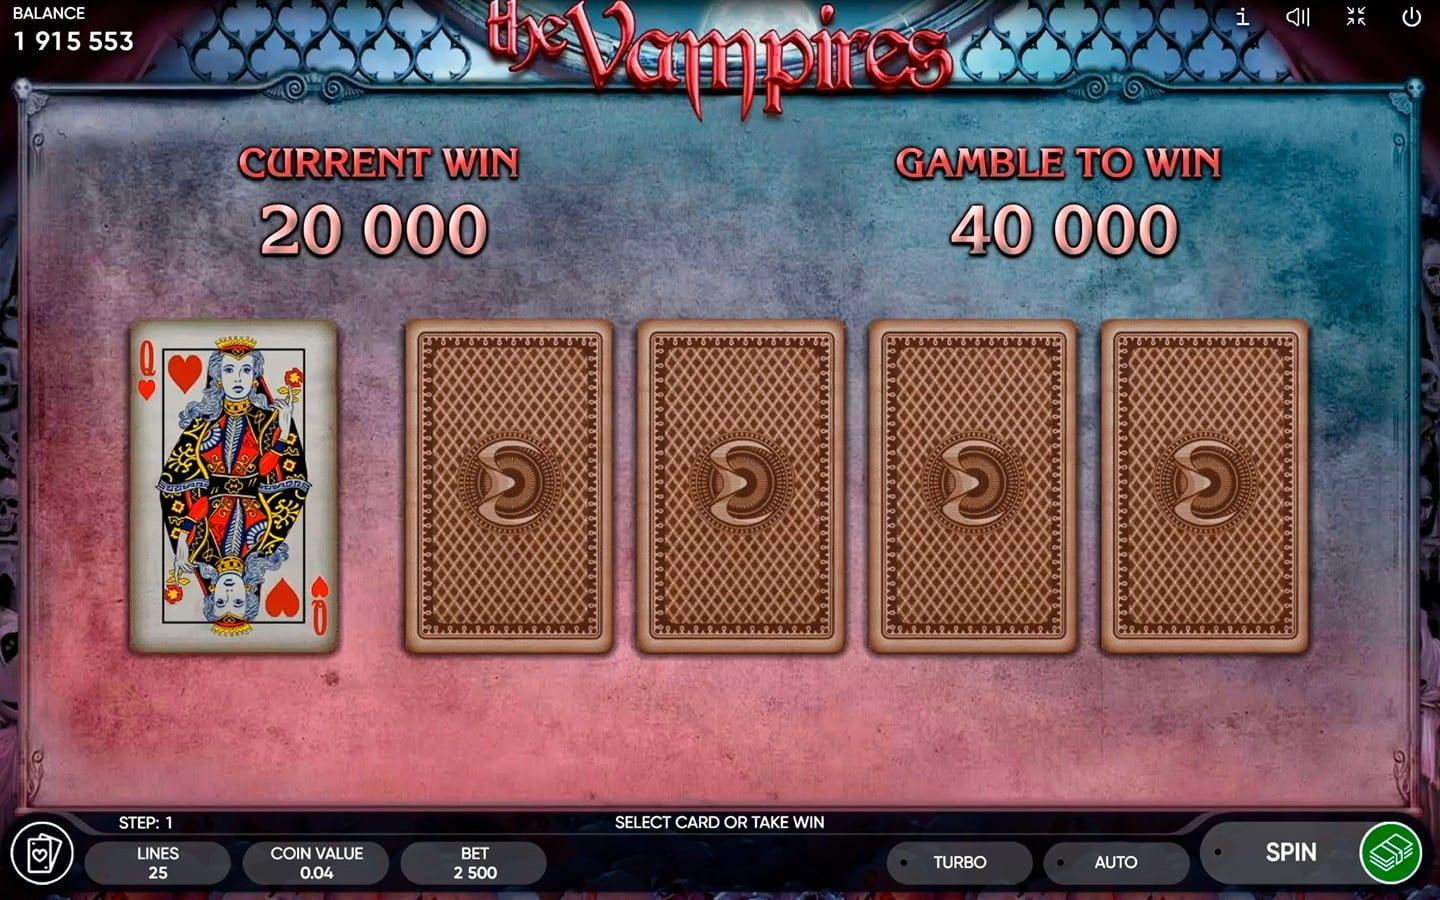 The Vampires Paytable: The Vampire Slot Machine has a good diversity of winning symbols. High-win symbols are beautifully depicted as different Vampires.